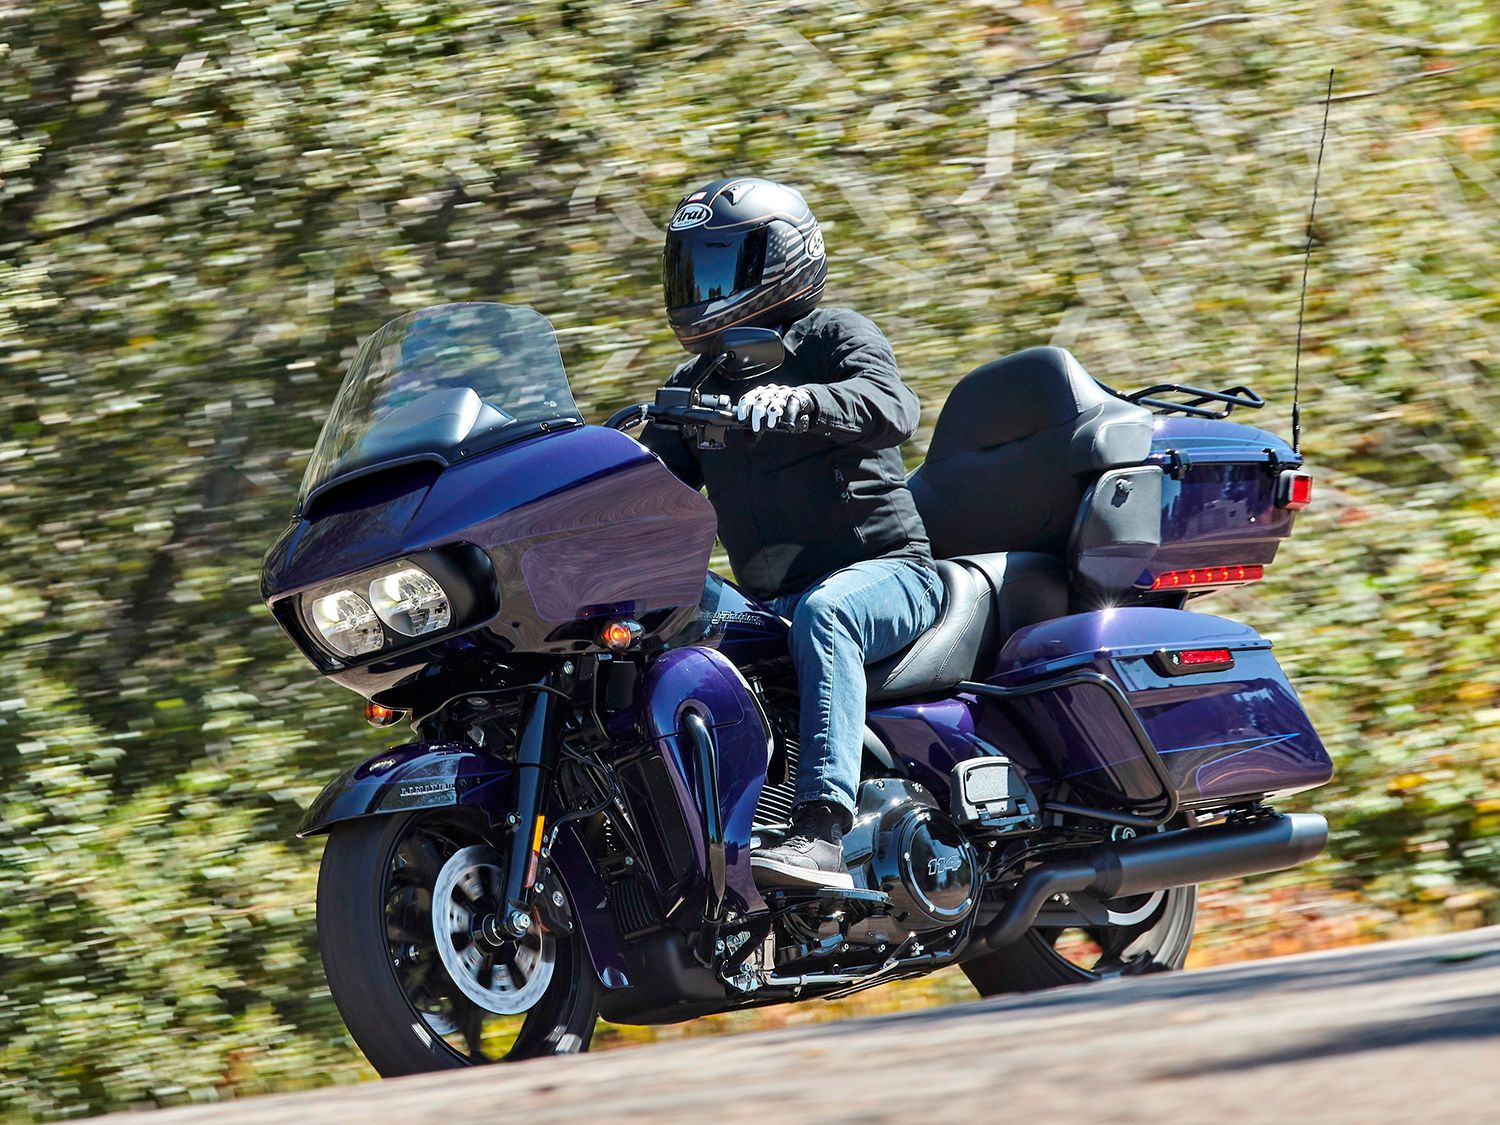 What do you think, blue or purple? Harley officially calls this color Zephyr Blue (with Black Finish) but a couple of us weren't so sure…